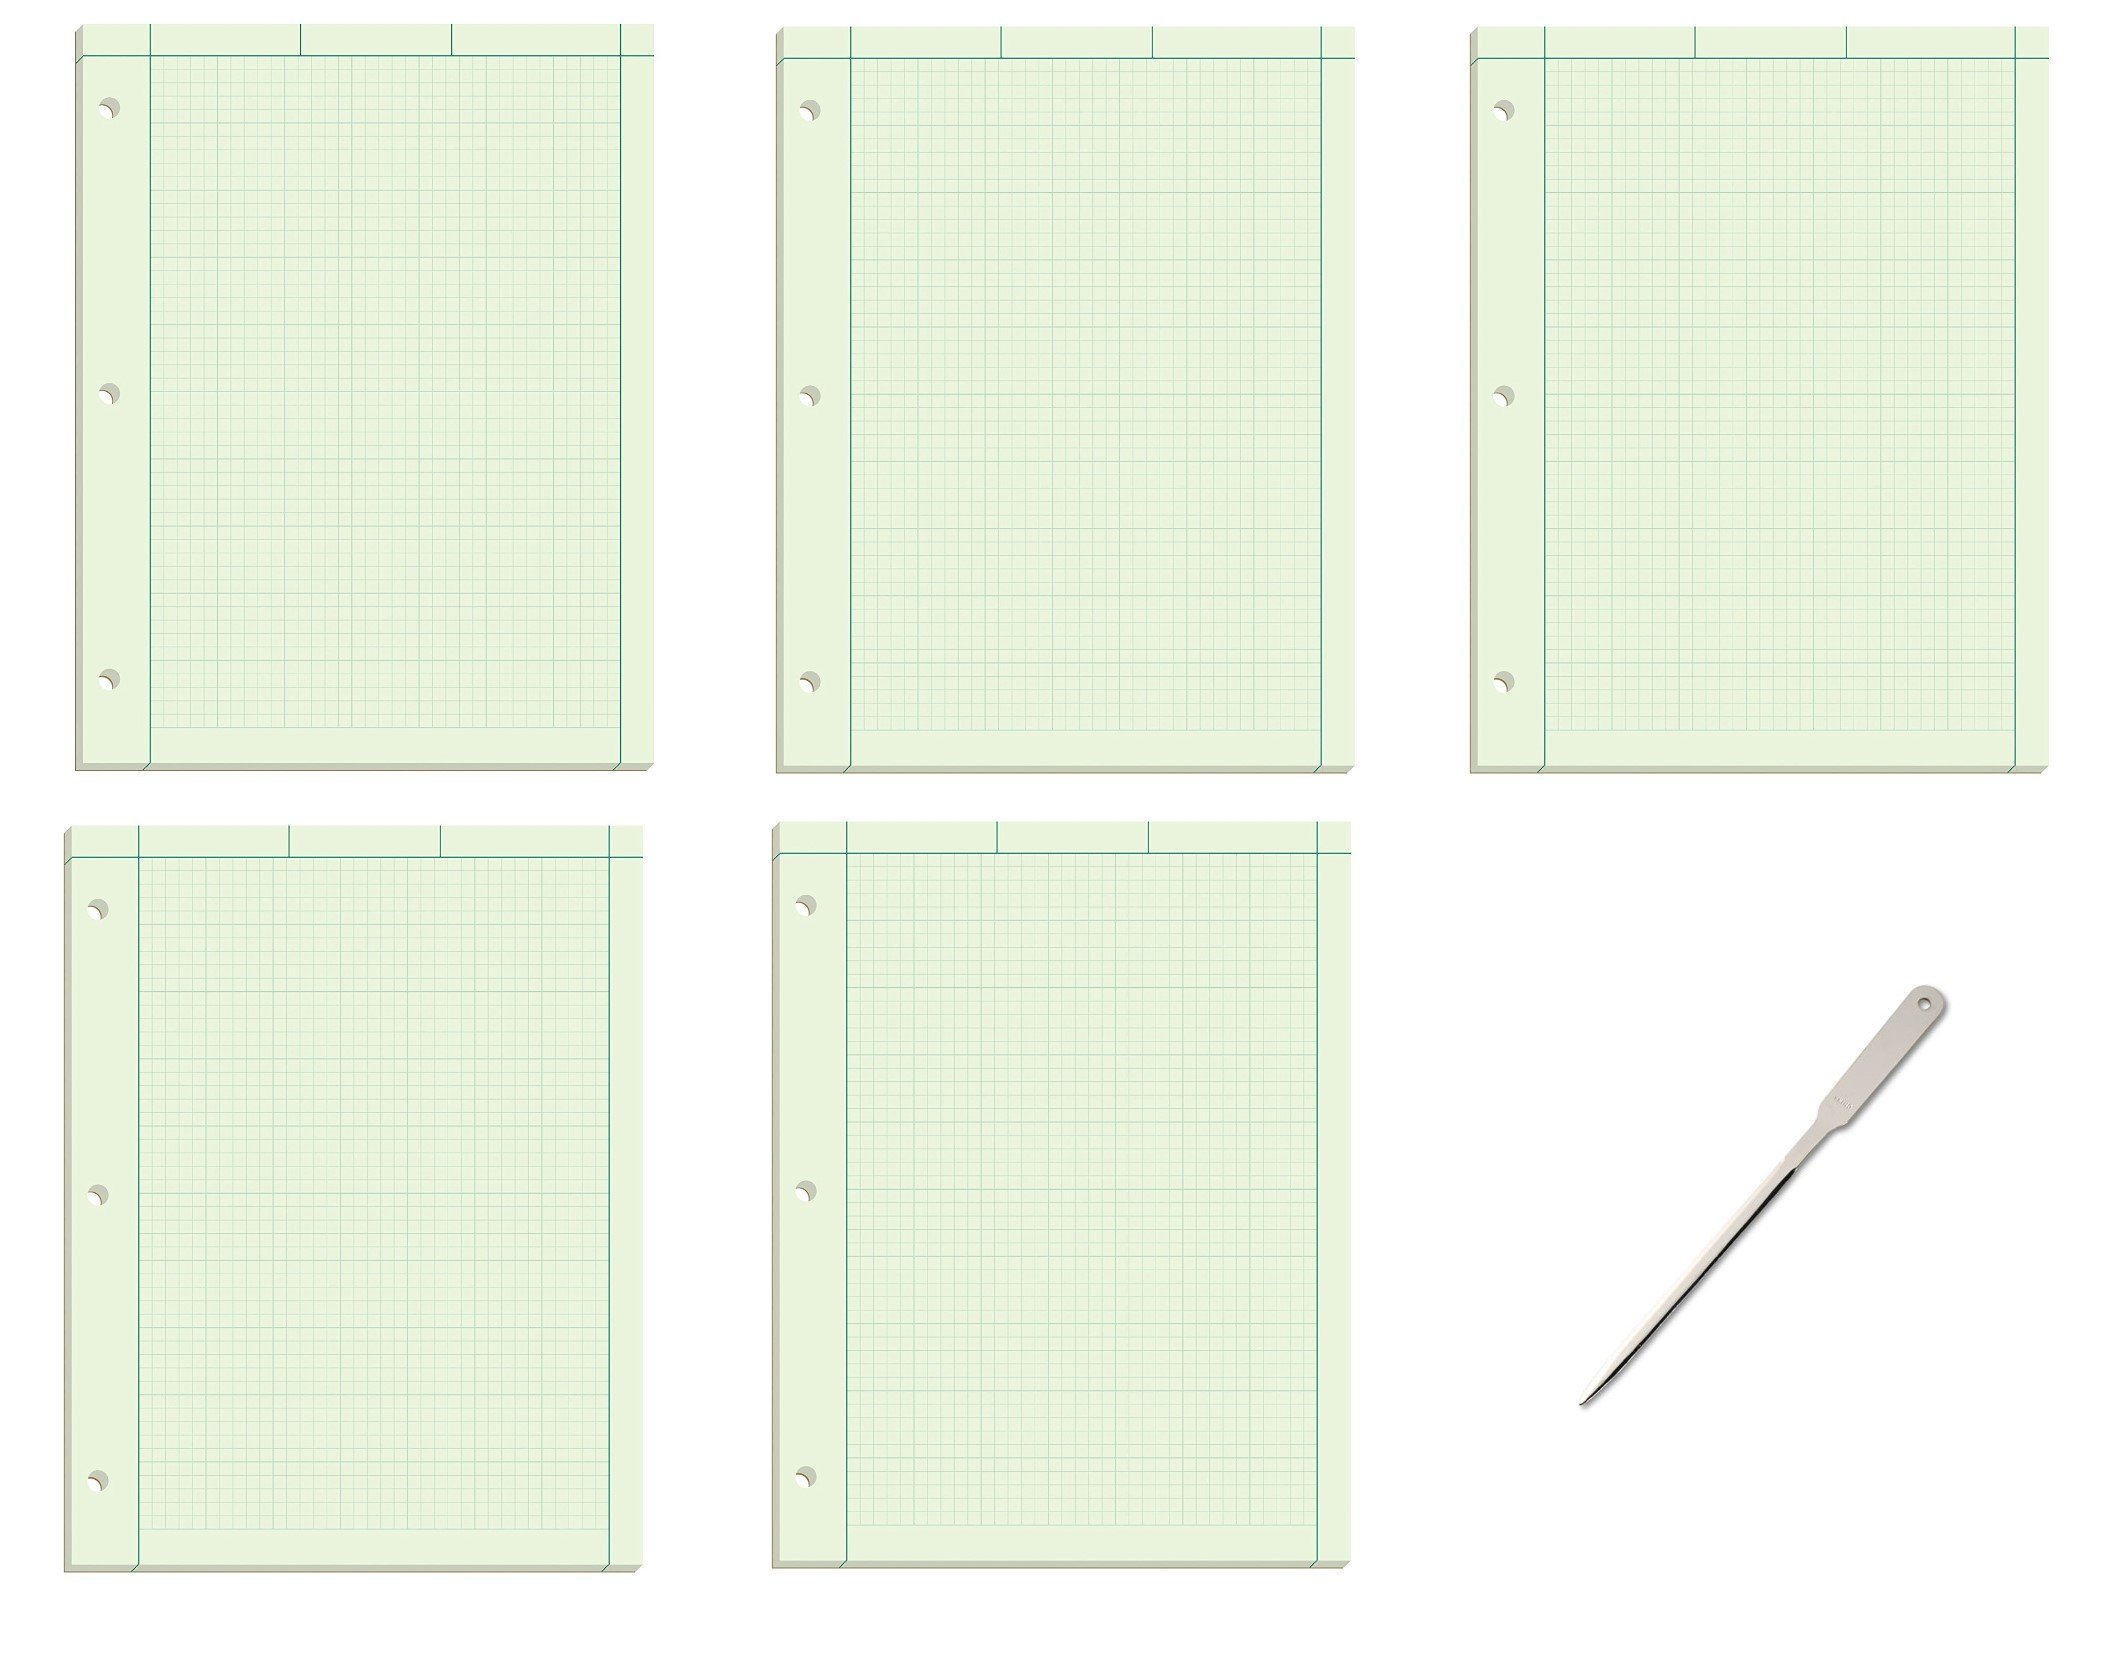 Ampad Evidence Engineering Pad, 100 Sheets, 5 Squares Per Inch, Green Tint, 11'' H x 8 1/2 W, Pack Of 5 (22-142) - Bundle Includes Universal Letter Opener